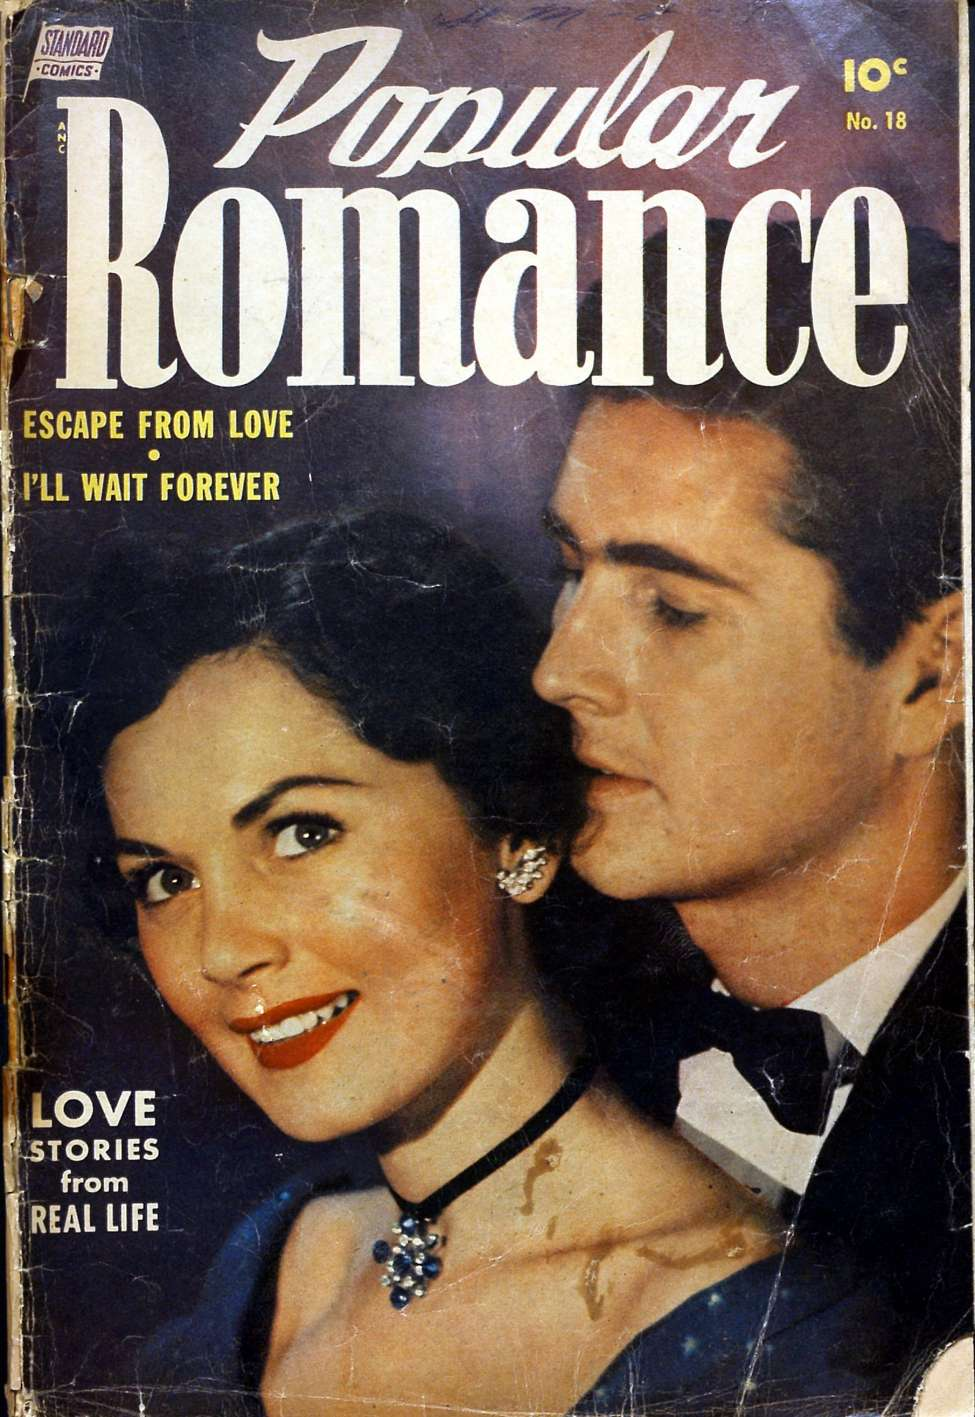 Comic Book Cover For Popular Romance #18